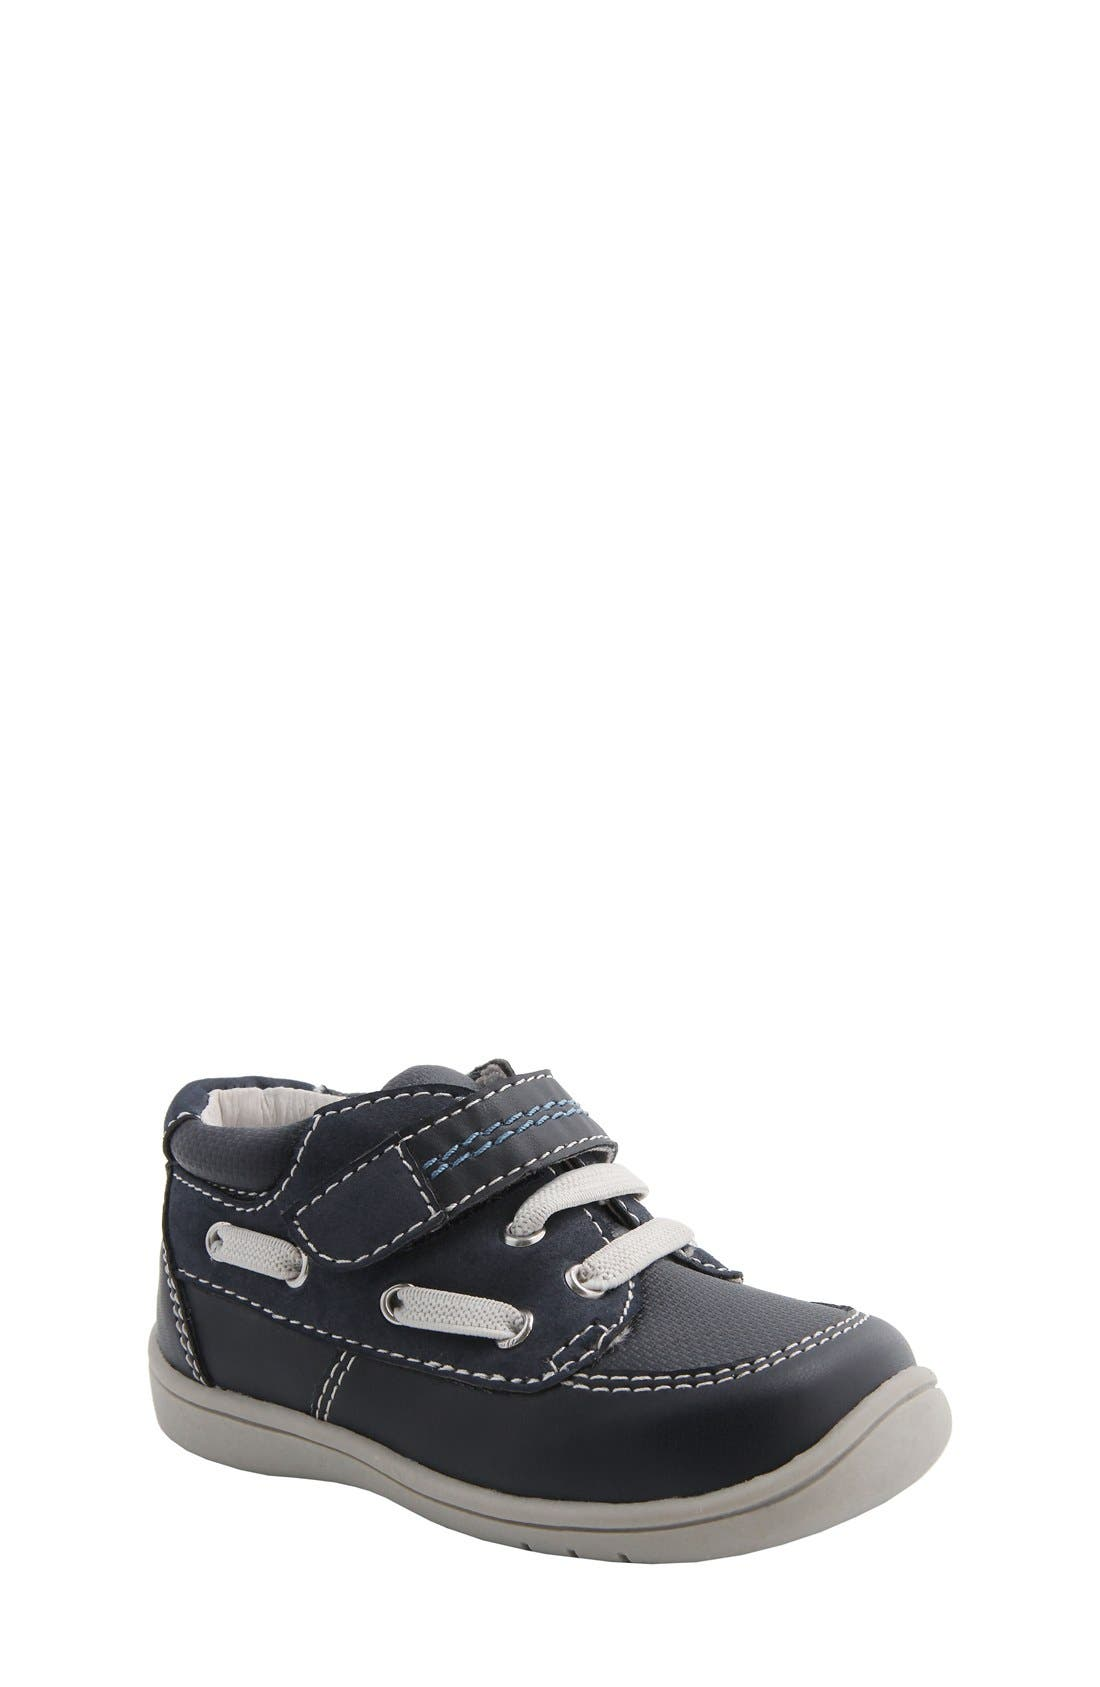 Alternate Image 1 Selected - Nina 'Blur' Sneaker (Baby & Walker)